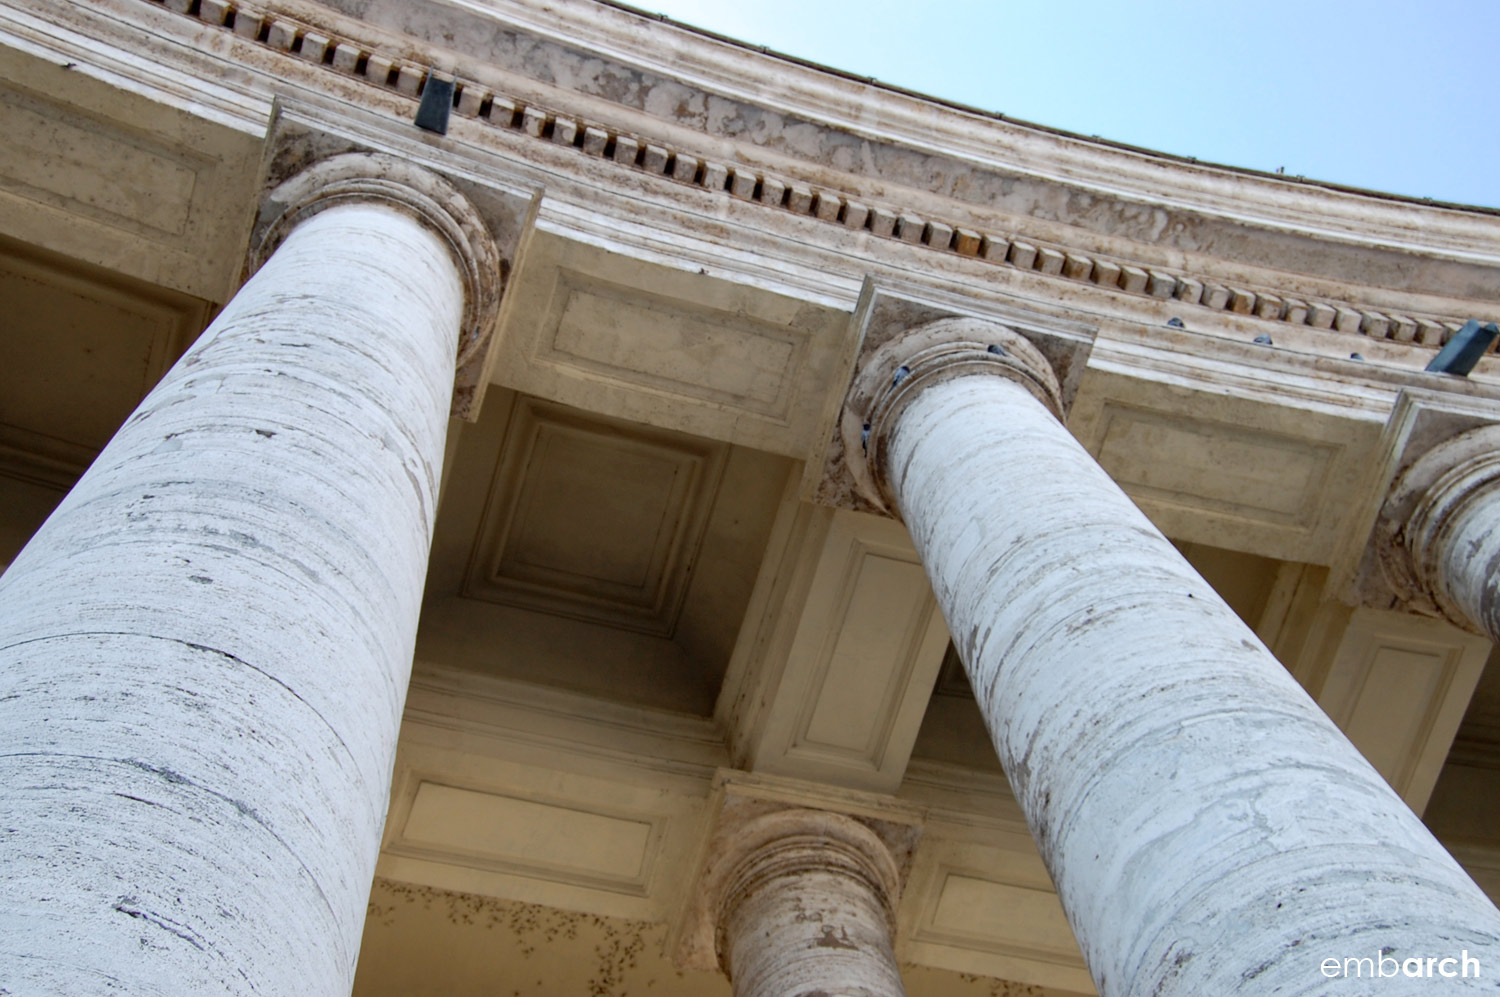 St. Peter's Basilica - exterior detail at portico.